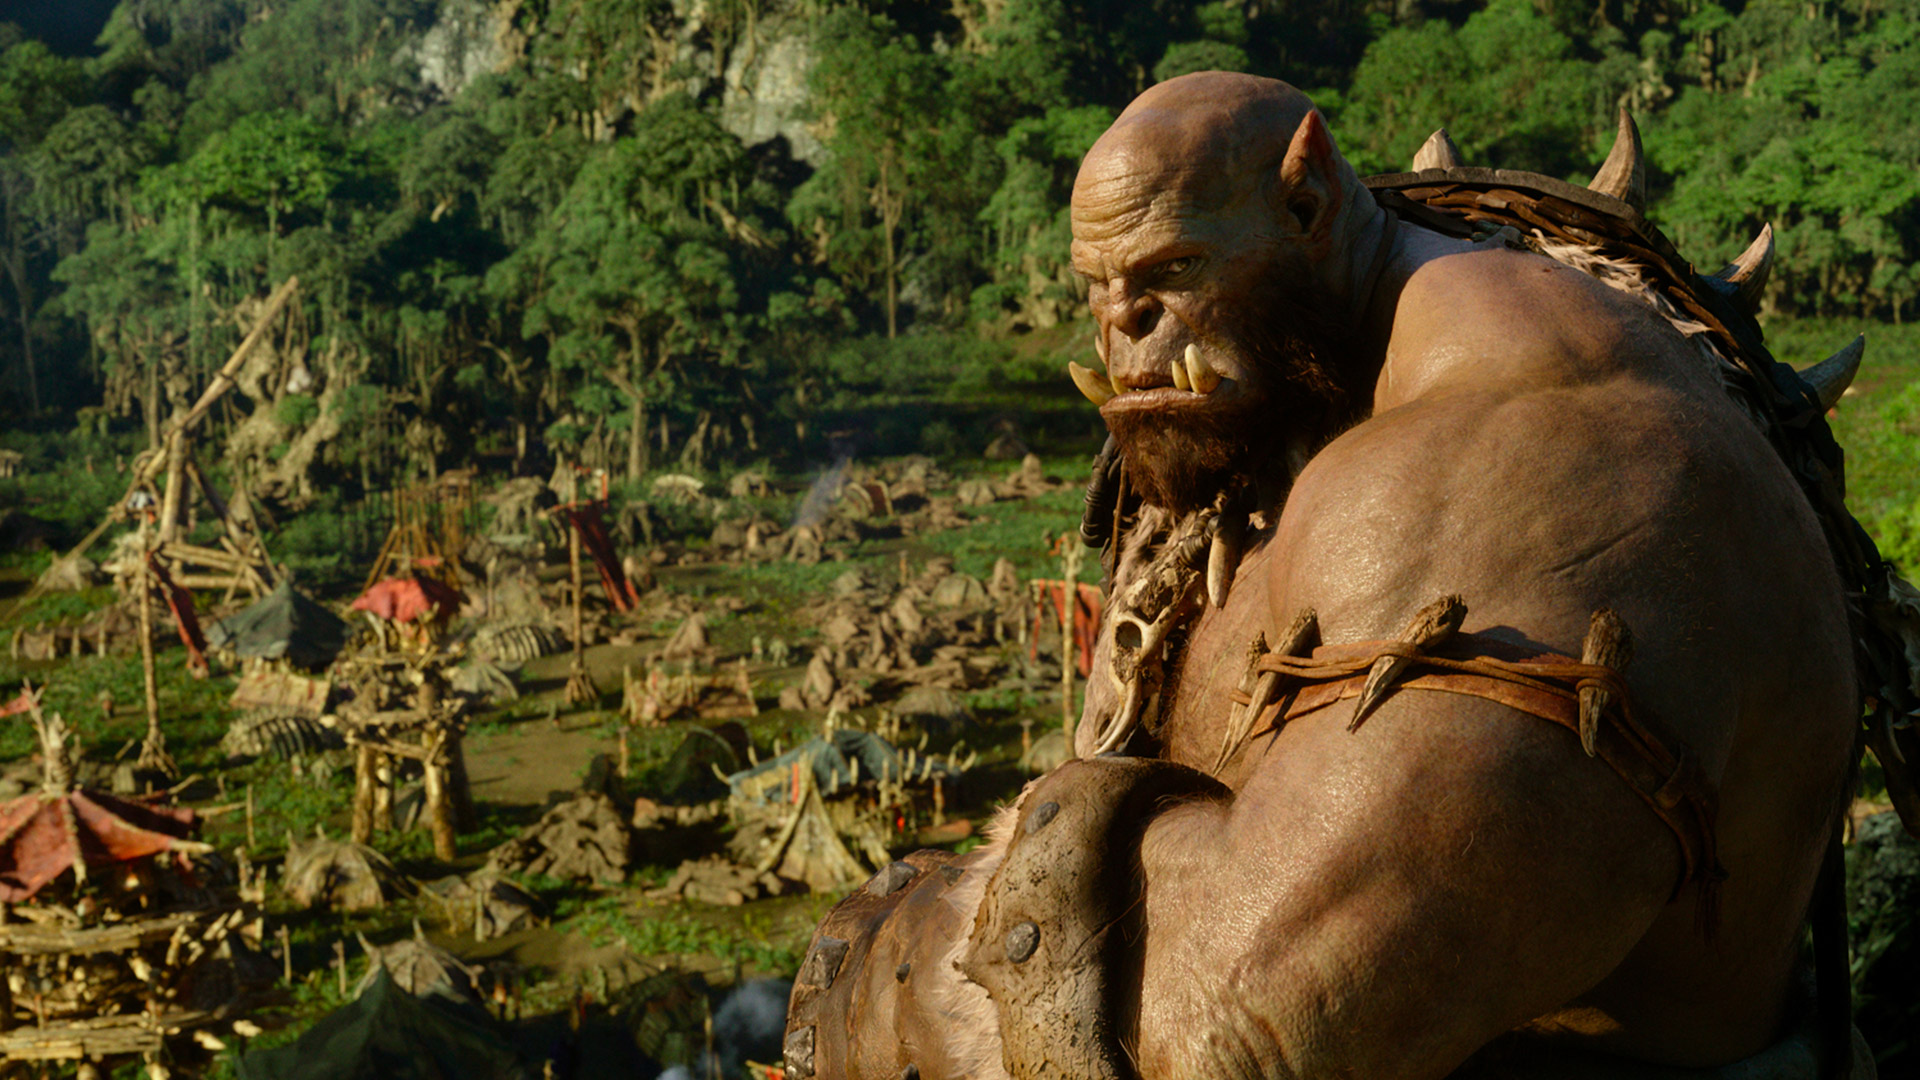 Is Warcraft racist?